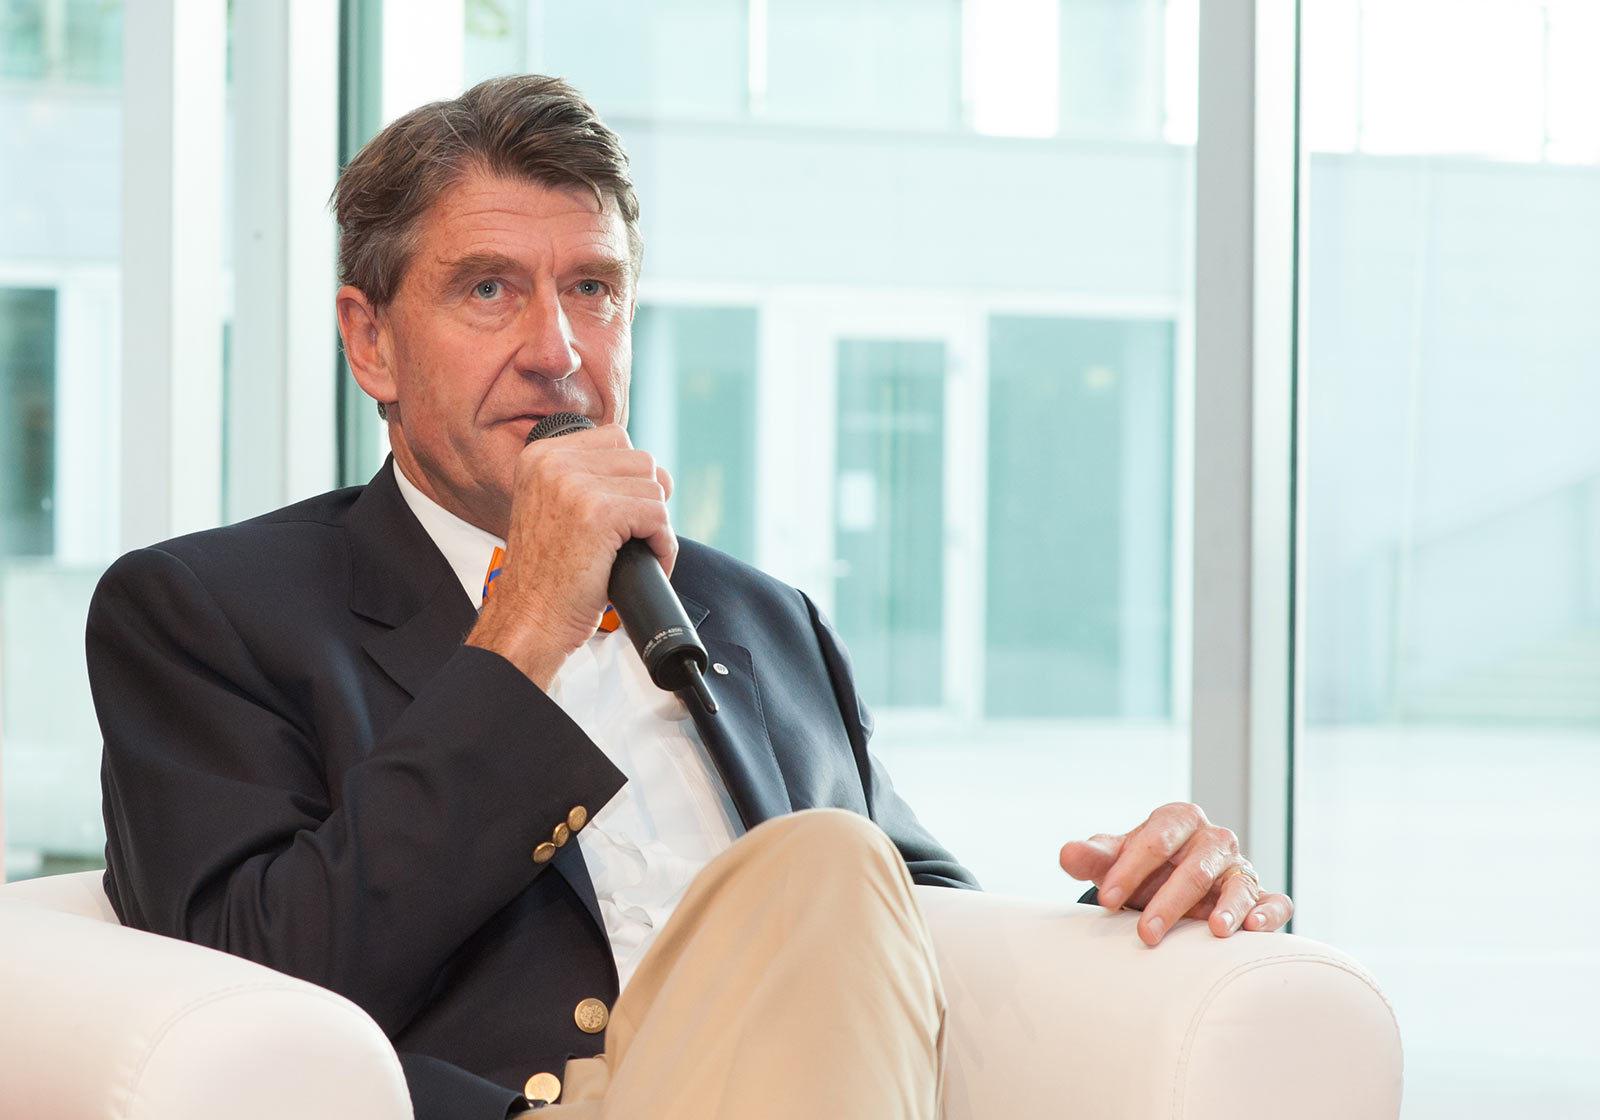 ATP CEO, Professor Christoph M. Achammer. Photo: Milena Krobath